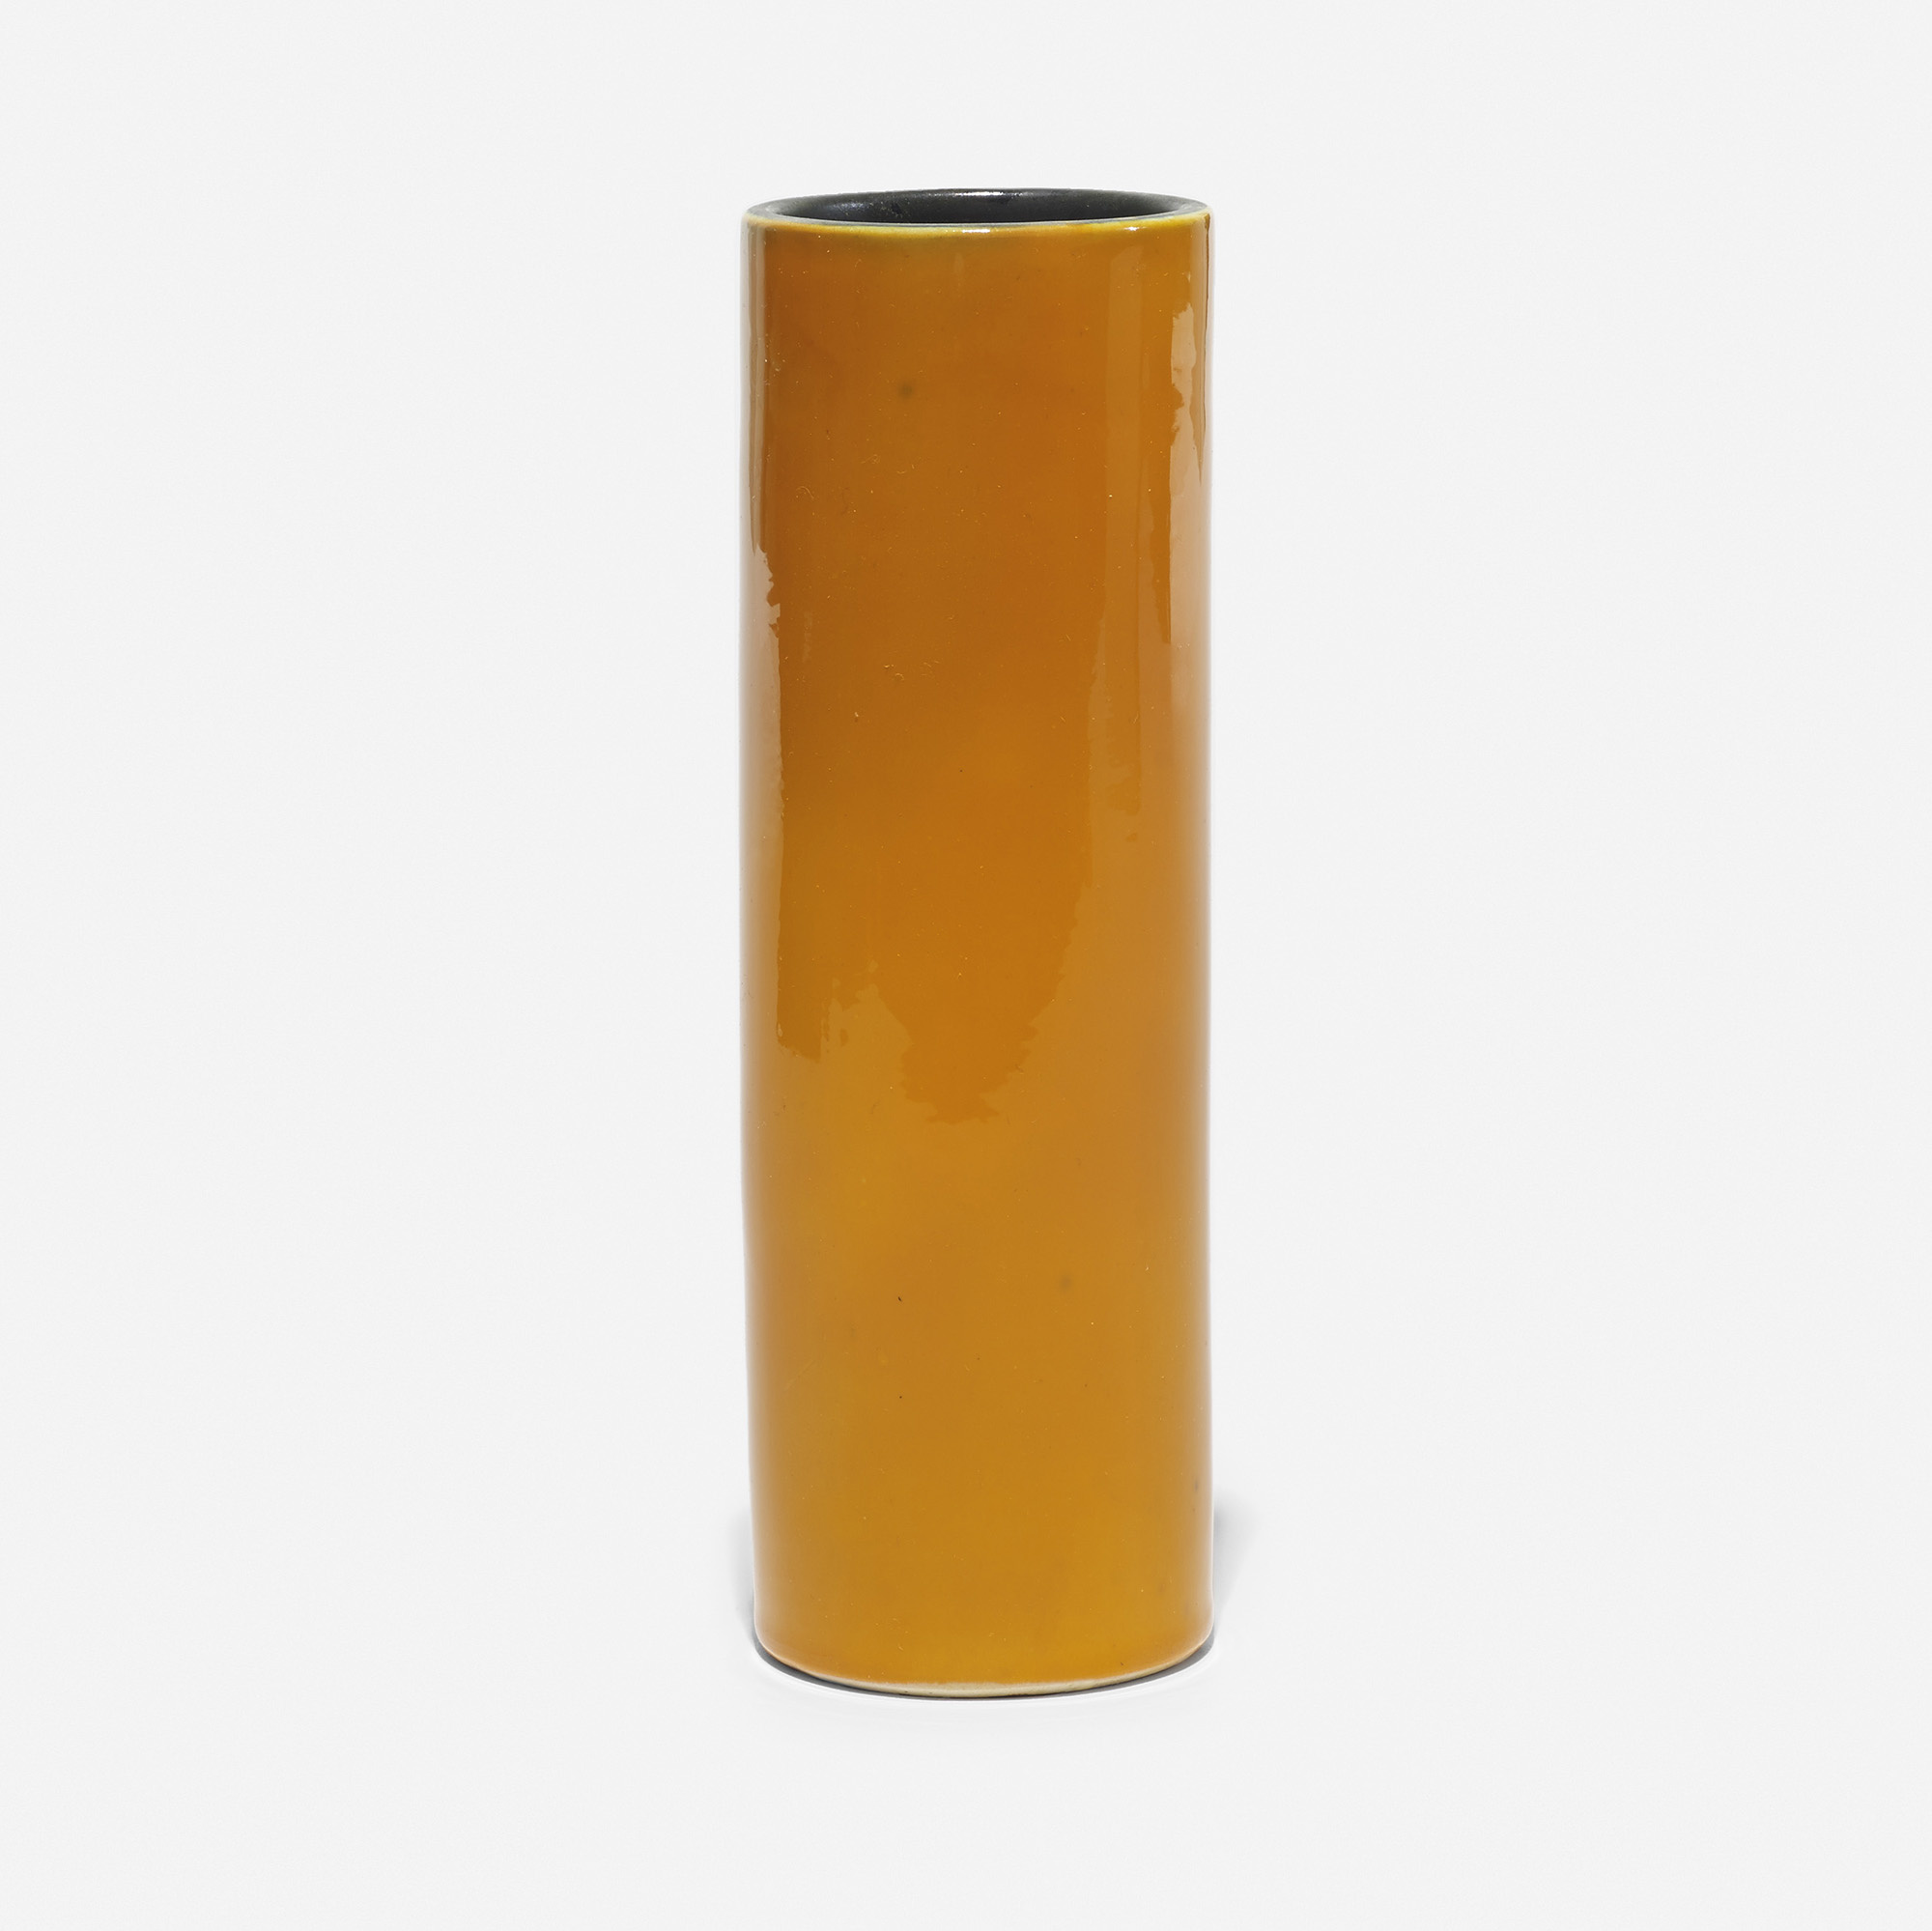 224: Georges Jouve / Cylinder vase (1 of 2)